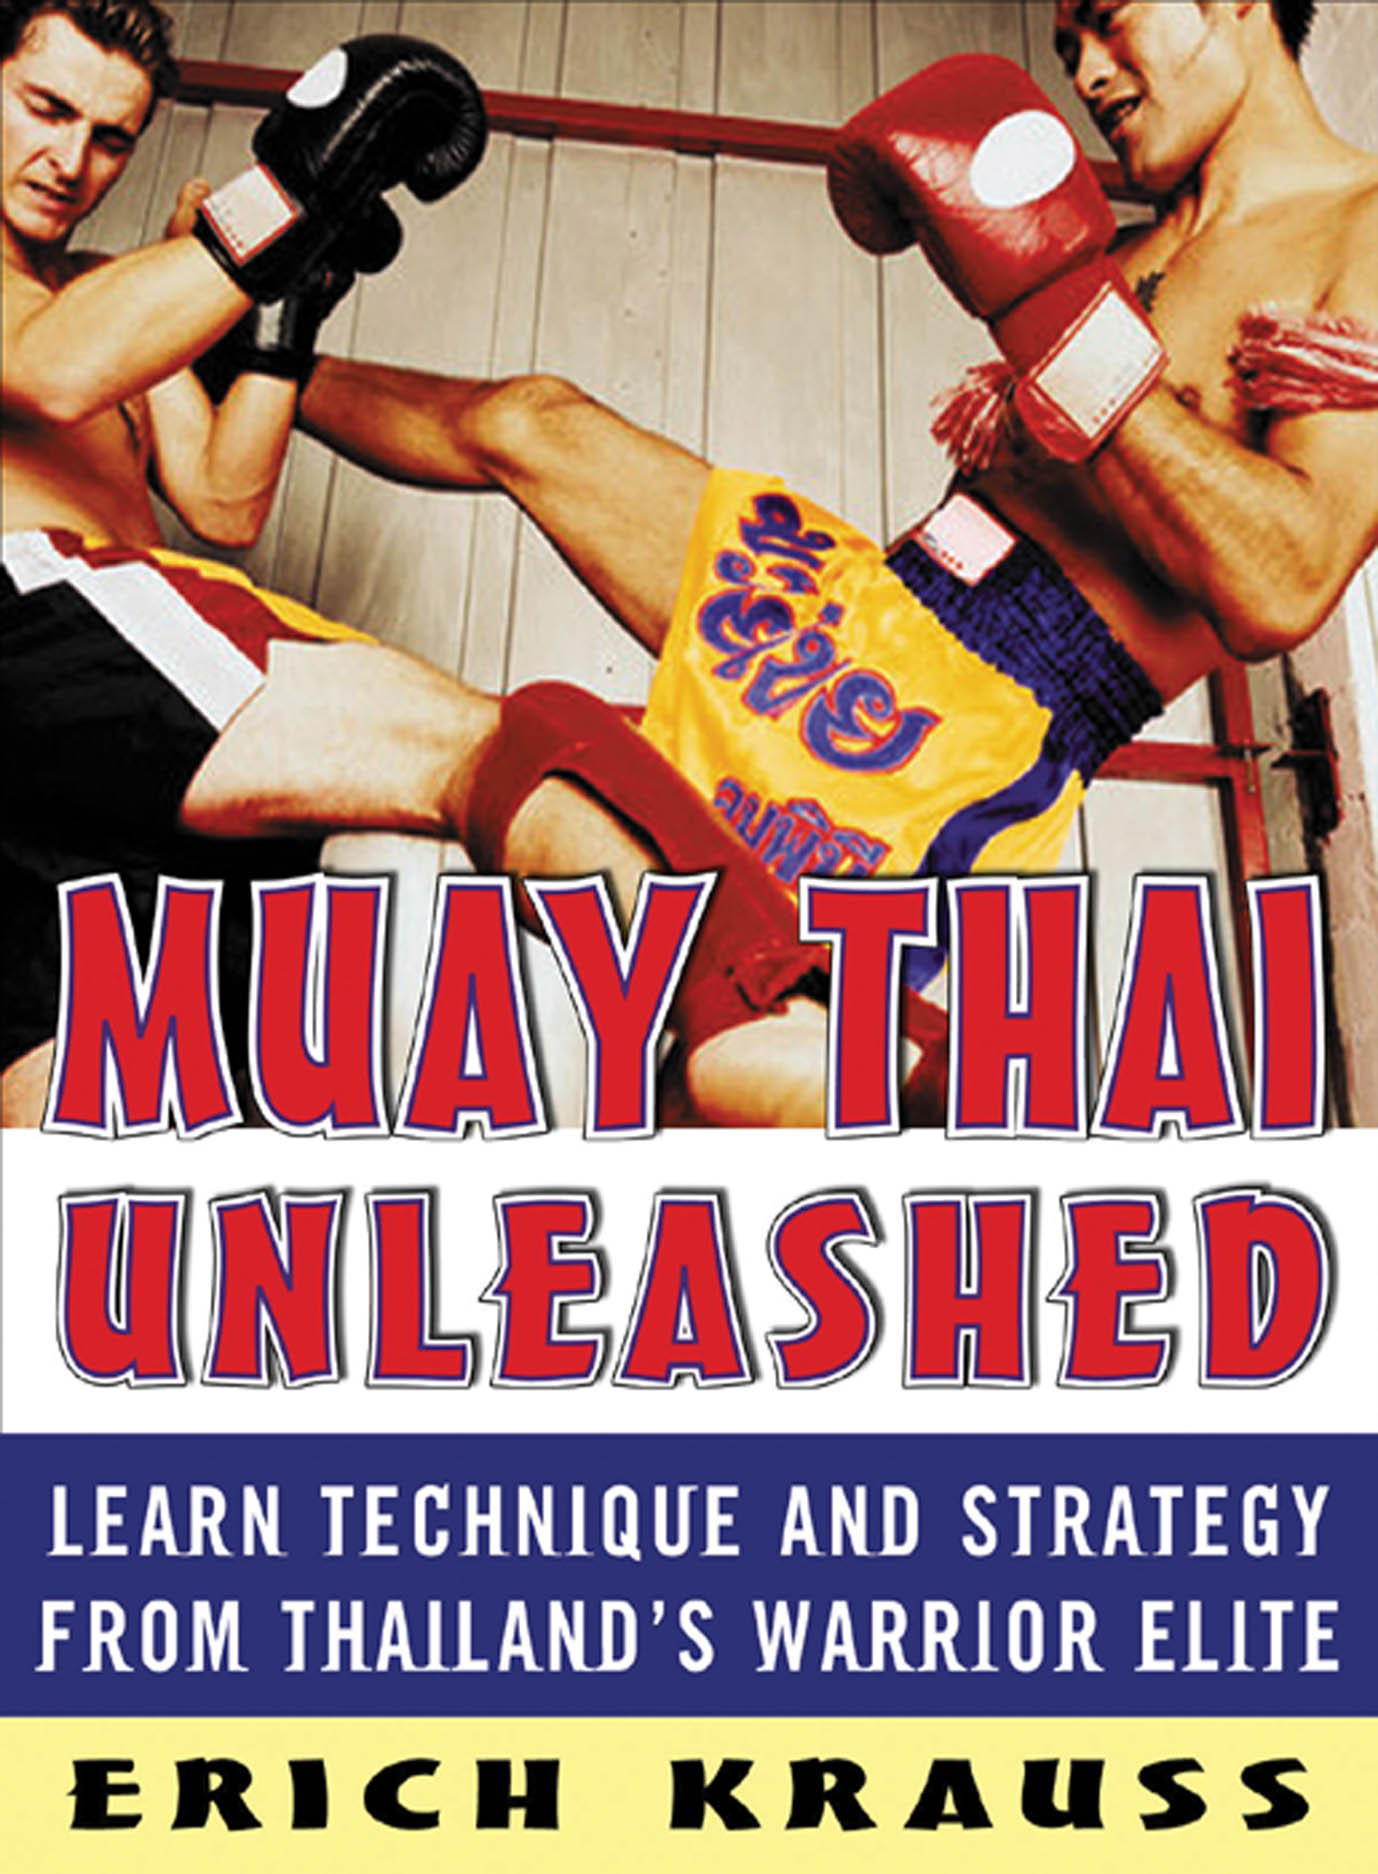 Muay Thai Unleashed : Learn Technique and Strategy from Thailand's Warrior Elite